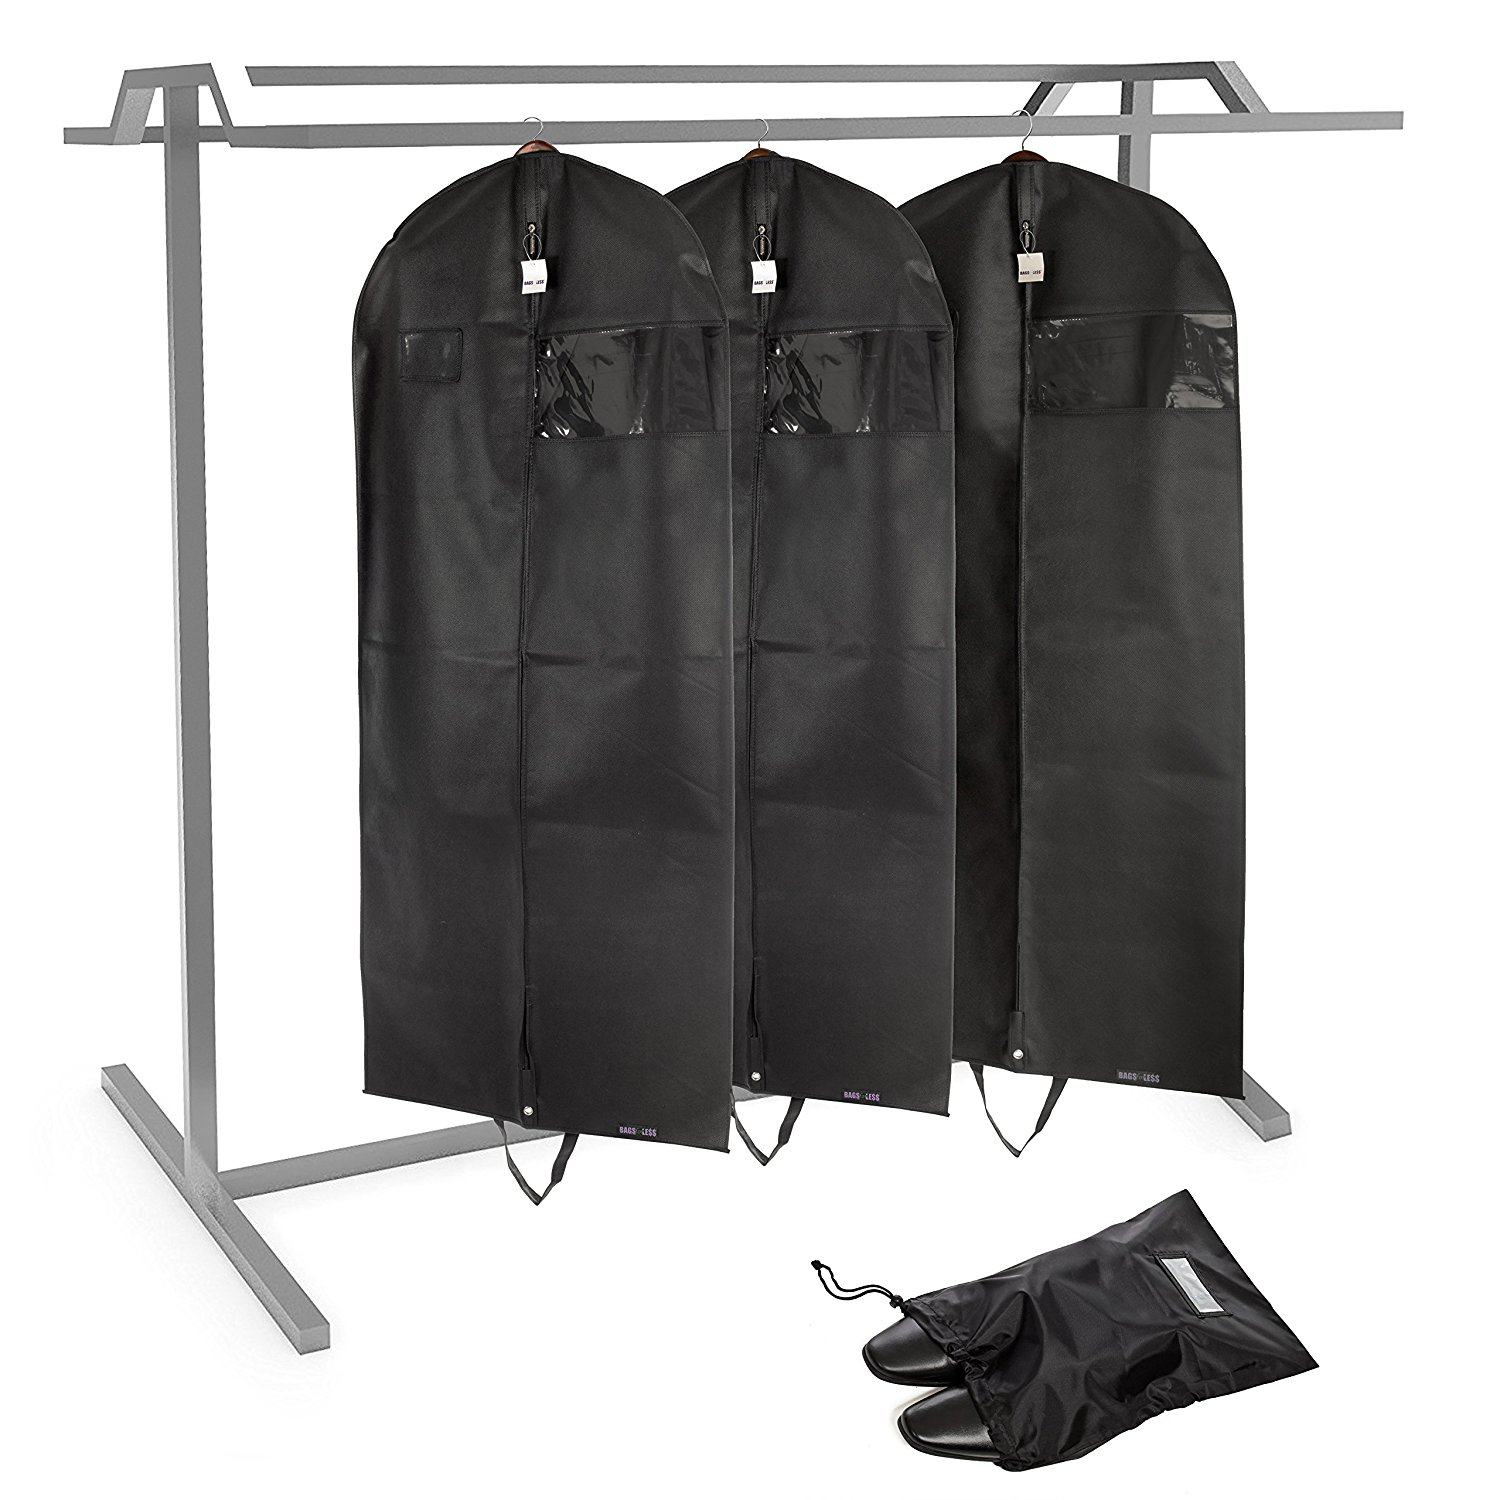 """[SET OF 3]Bag For Less PREMUIM QUALITY Black Breathable Garment Bag+ Shoe Bag. Travel And Storage 26""""x60""""x5"""" Zipper & Metal Eyehole And Carry Handles For Folding For Suits, Tuxedos, Dresses"""